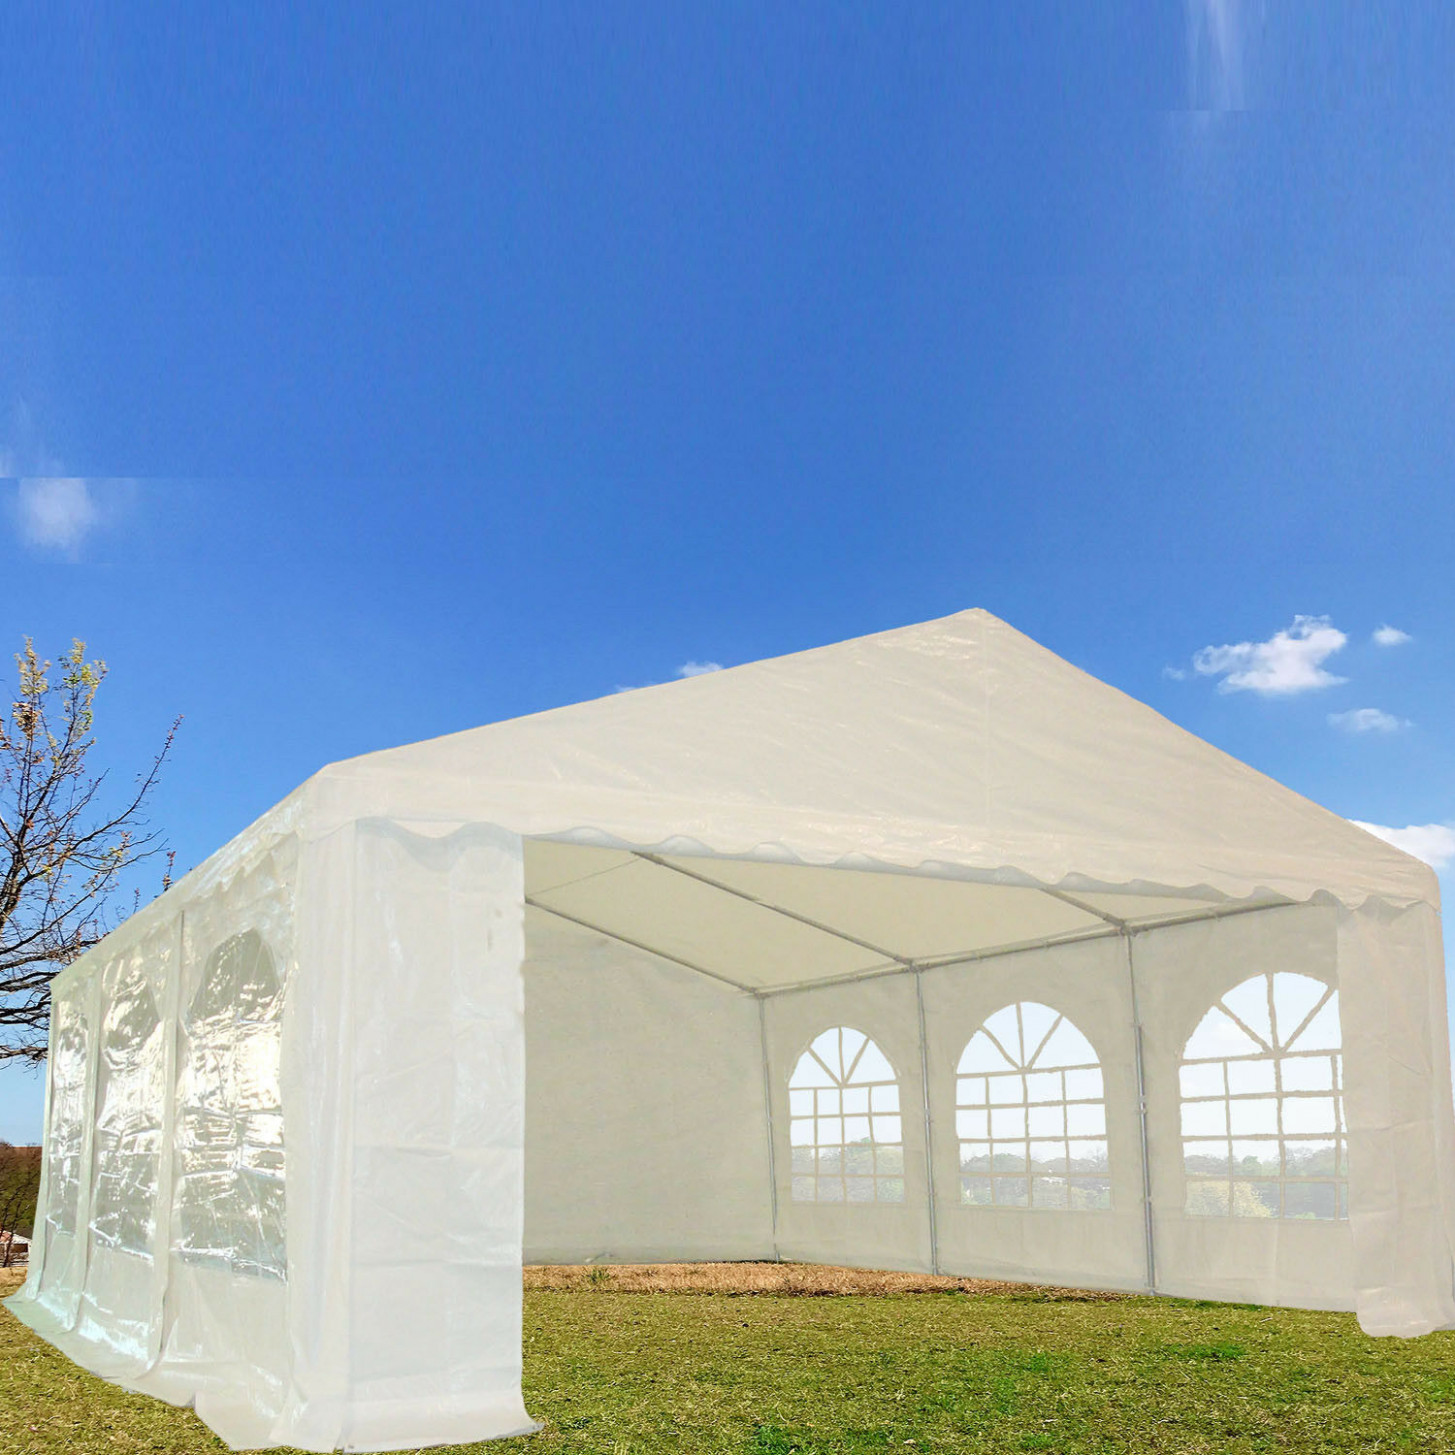 9'x9' PE Party Tent Heavy Duty Carport Canopy Wedding Shelter ..